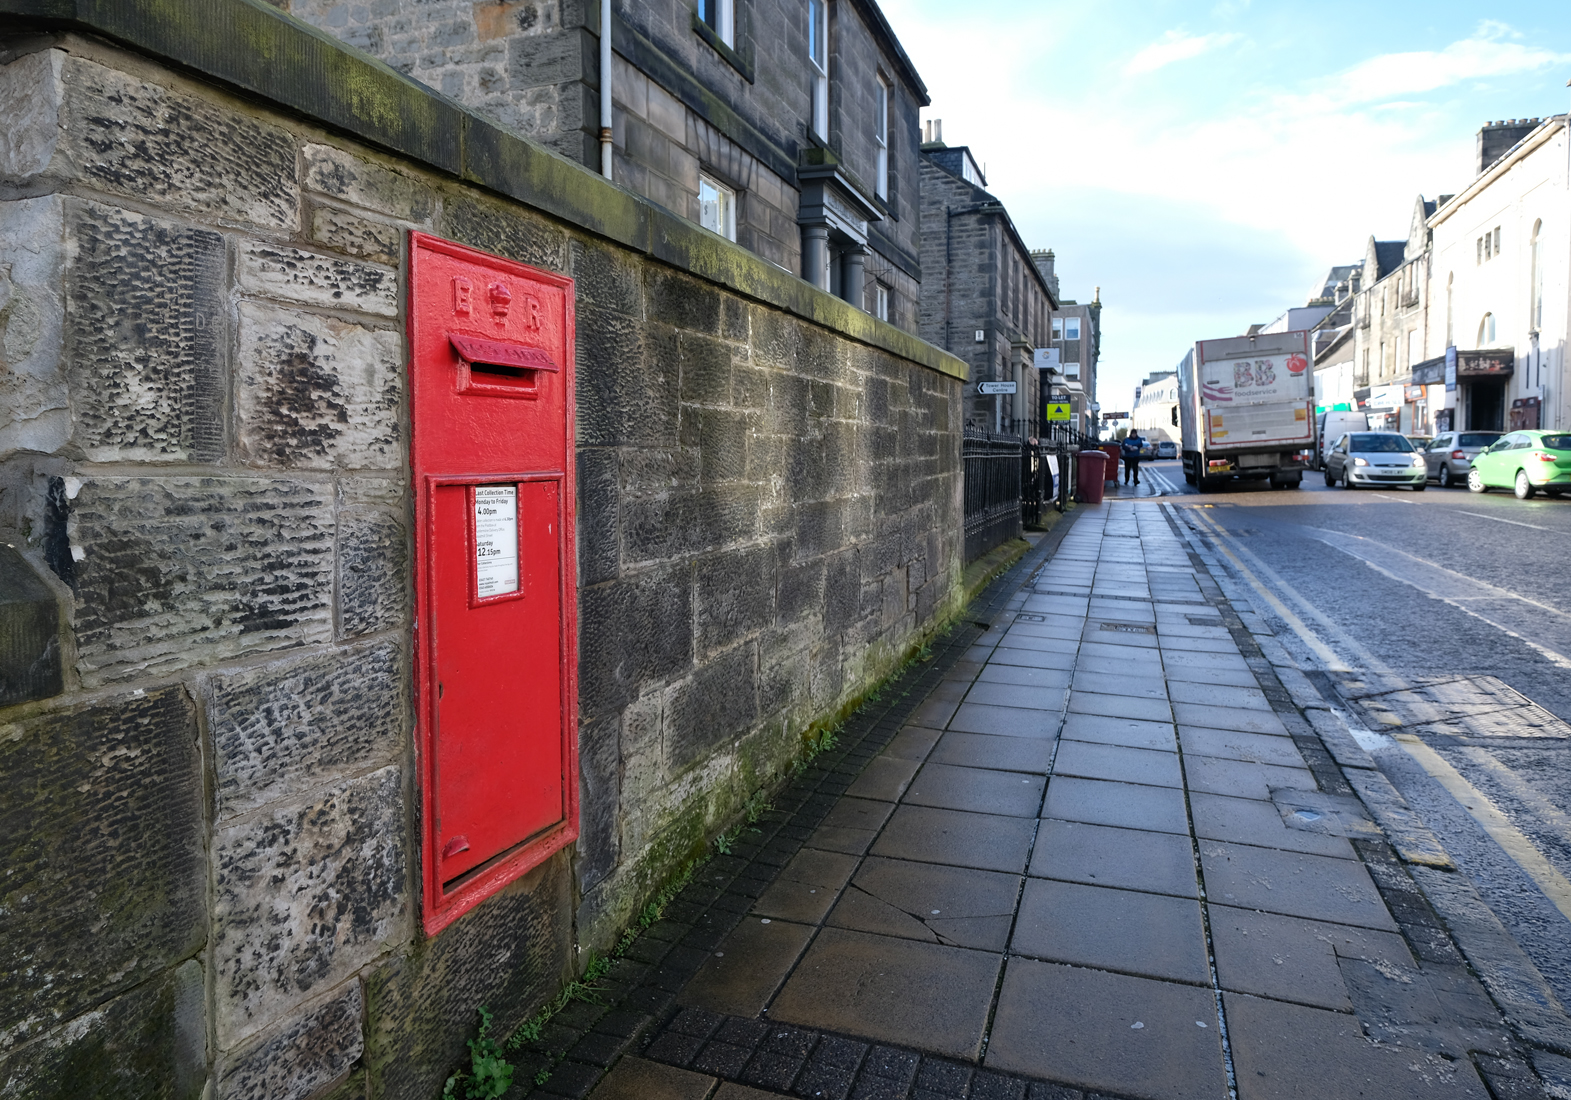 Red post box embedded in stone wall but pavement